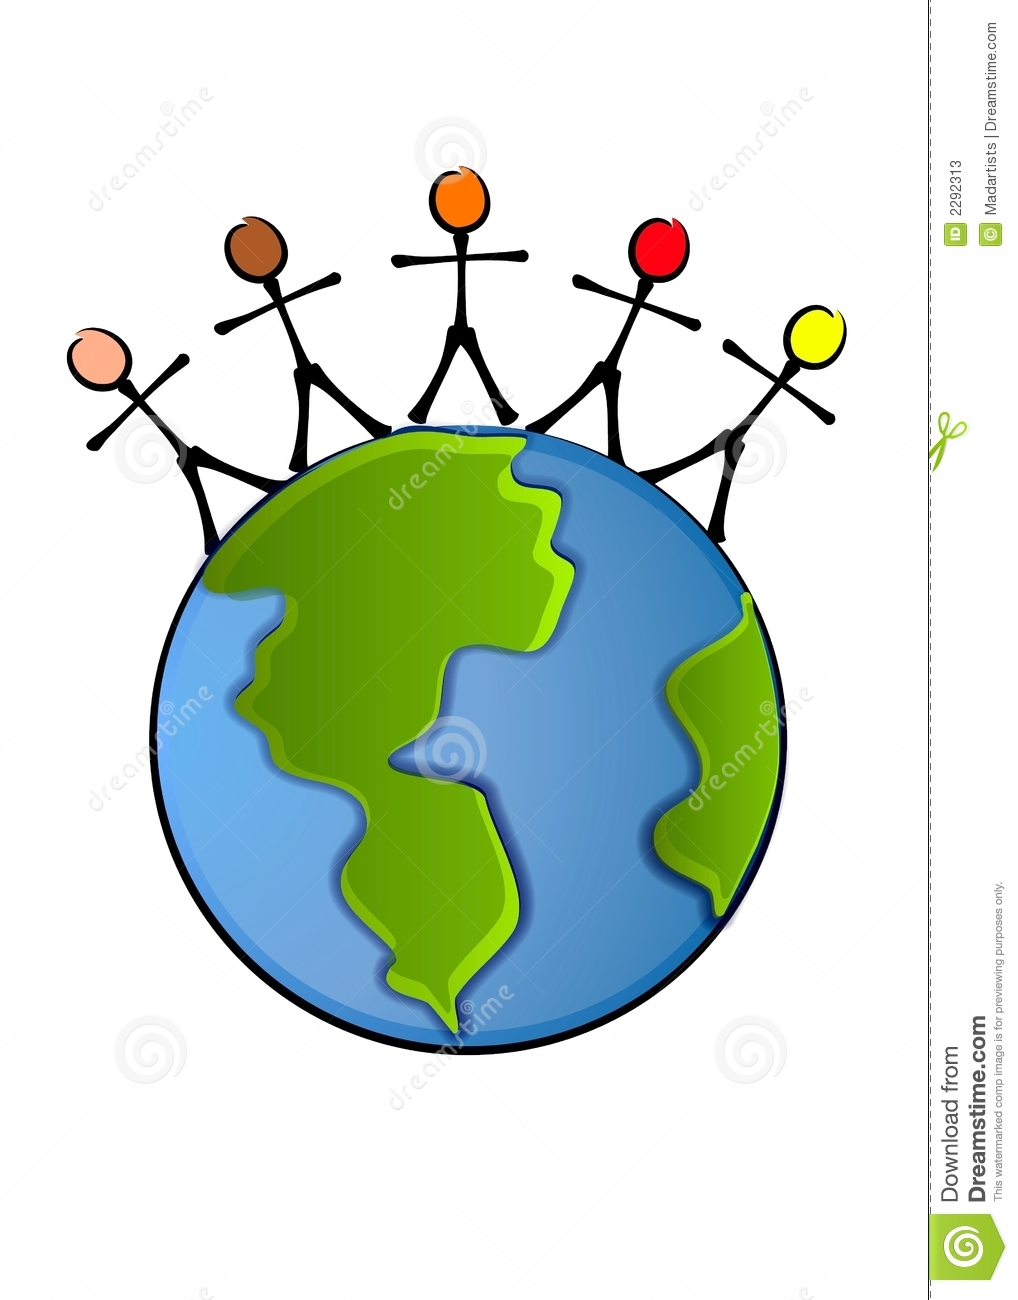 world peace earth clip art stock illustration illustration of rh dreamstime com free clipart of the world free clipart of the world